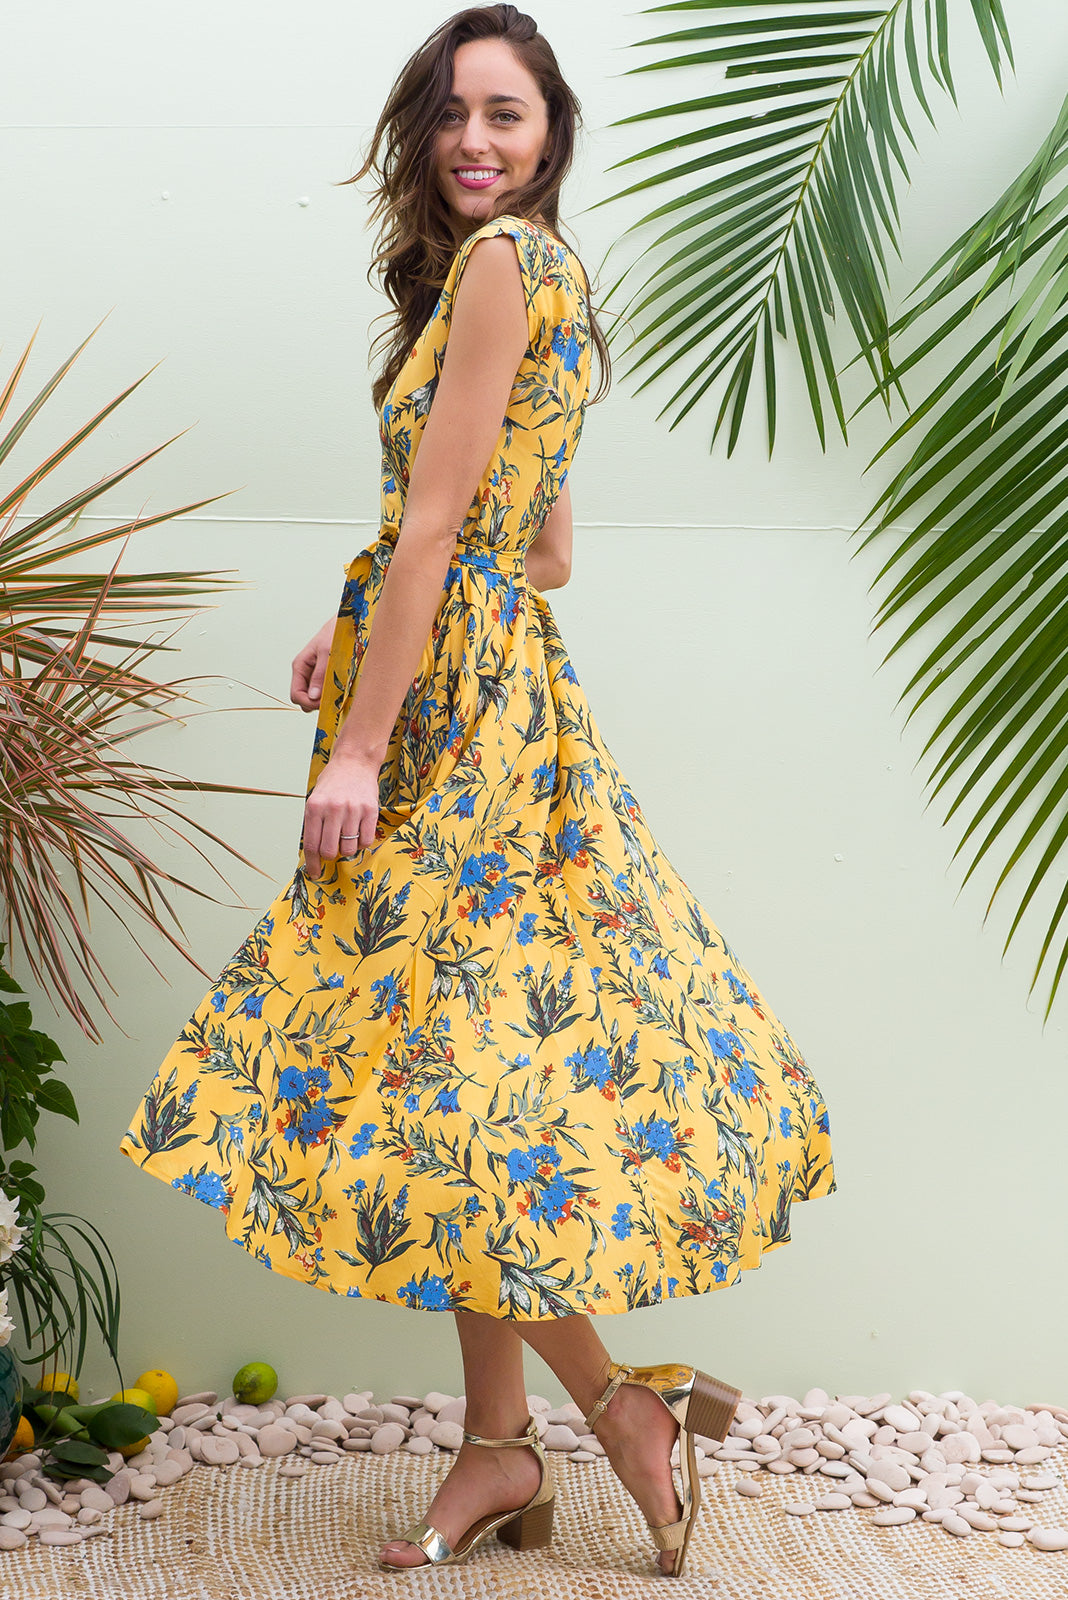 Florence Jasmine Gold  Wrap Dress featuring a fitted cross over bust and flirty skirt with side pocket  in a retro bohemian floral on a strong sunshine yellow print on a soft smooth finish rayon fabric